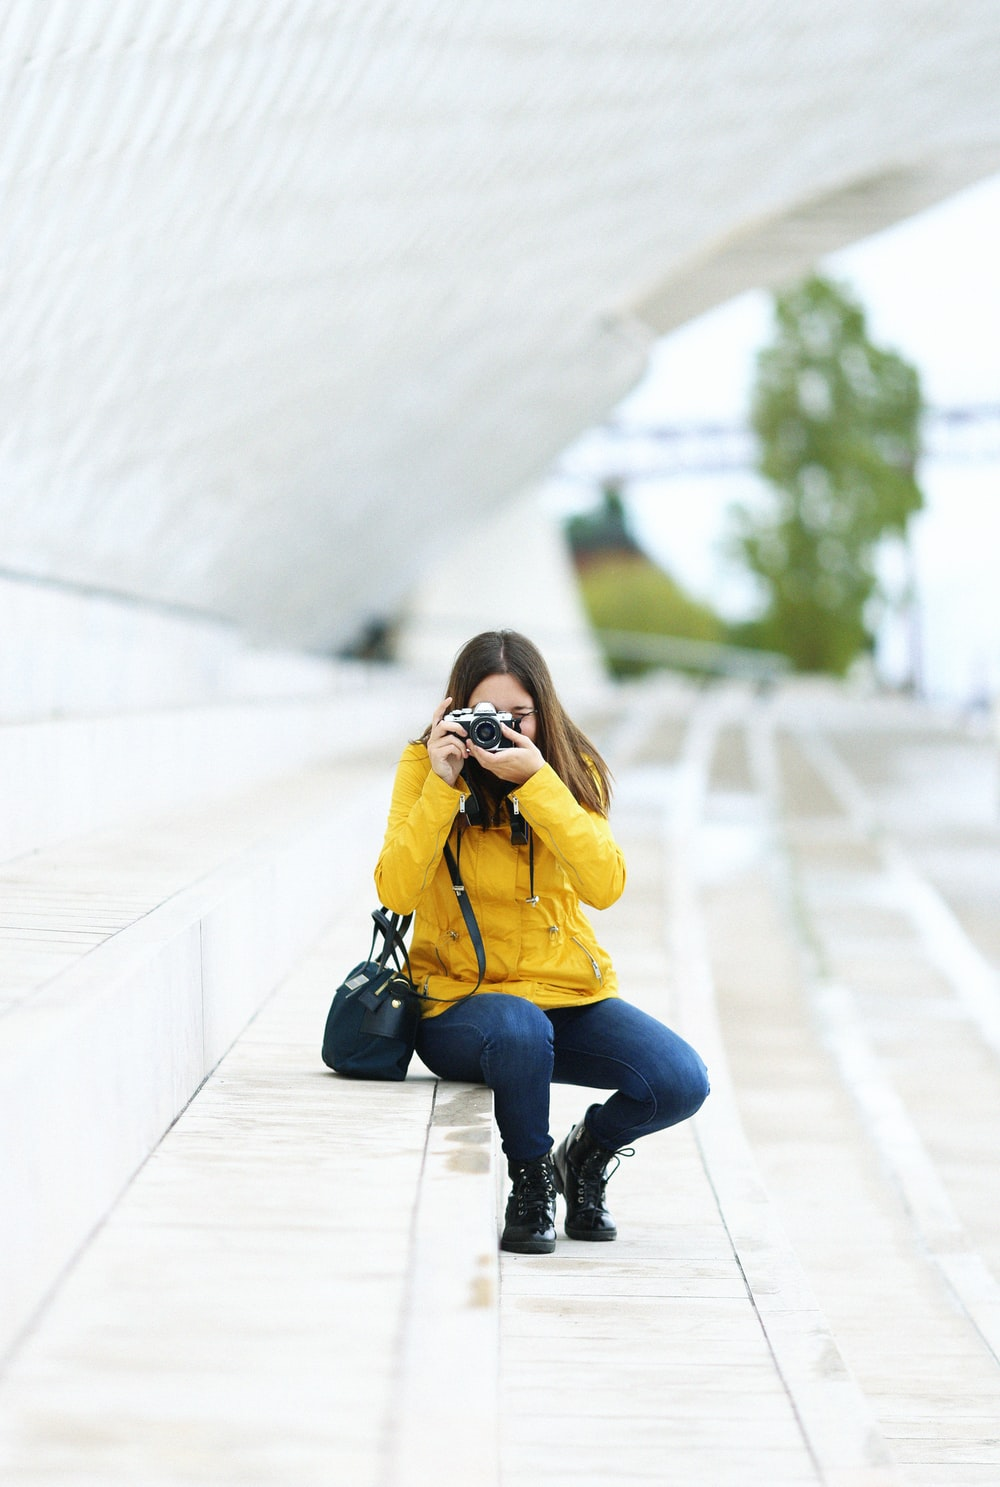 woman sitting on stair and capturing photo